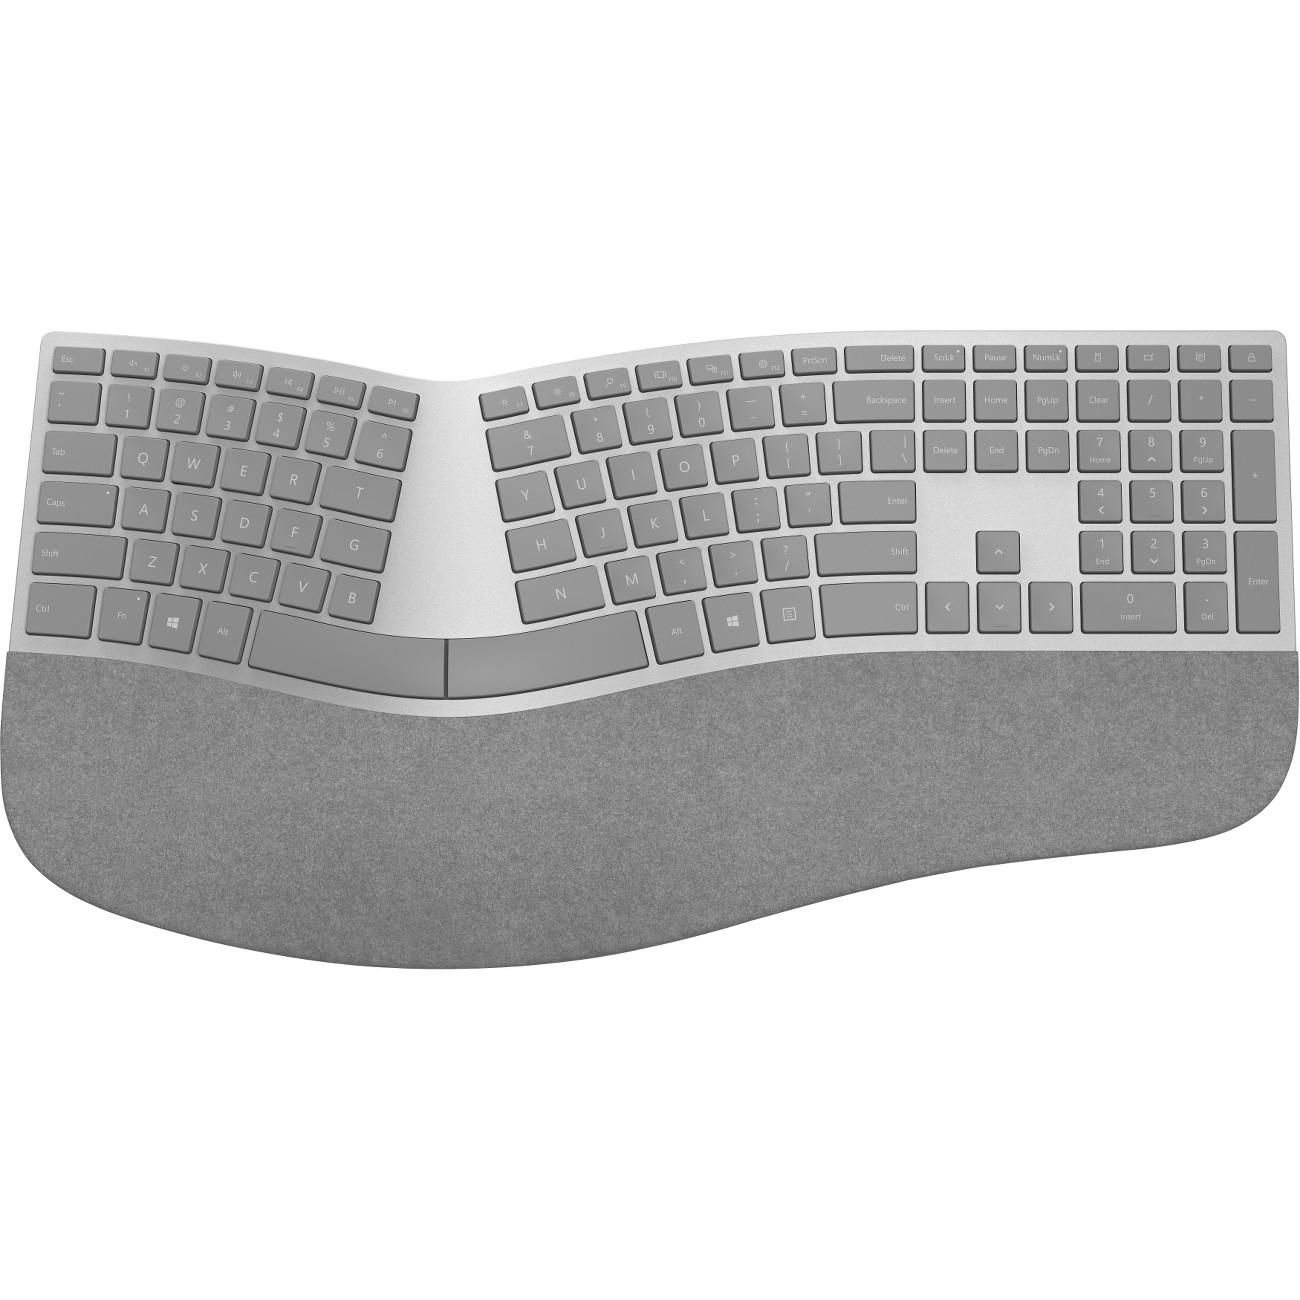 Microsoft Surface Ergonomic Keyboard - Wireless Connectivity - Bluetooth - Compatible with Notebook, Smartphone (Windows, Mac, Android, iOS) - QWERTY Keys Layout - Gray